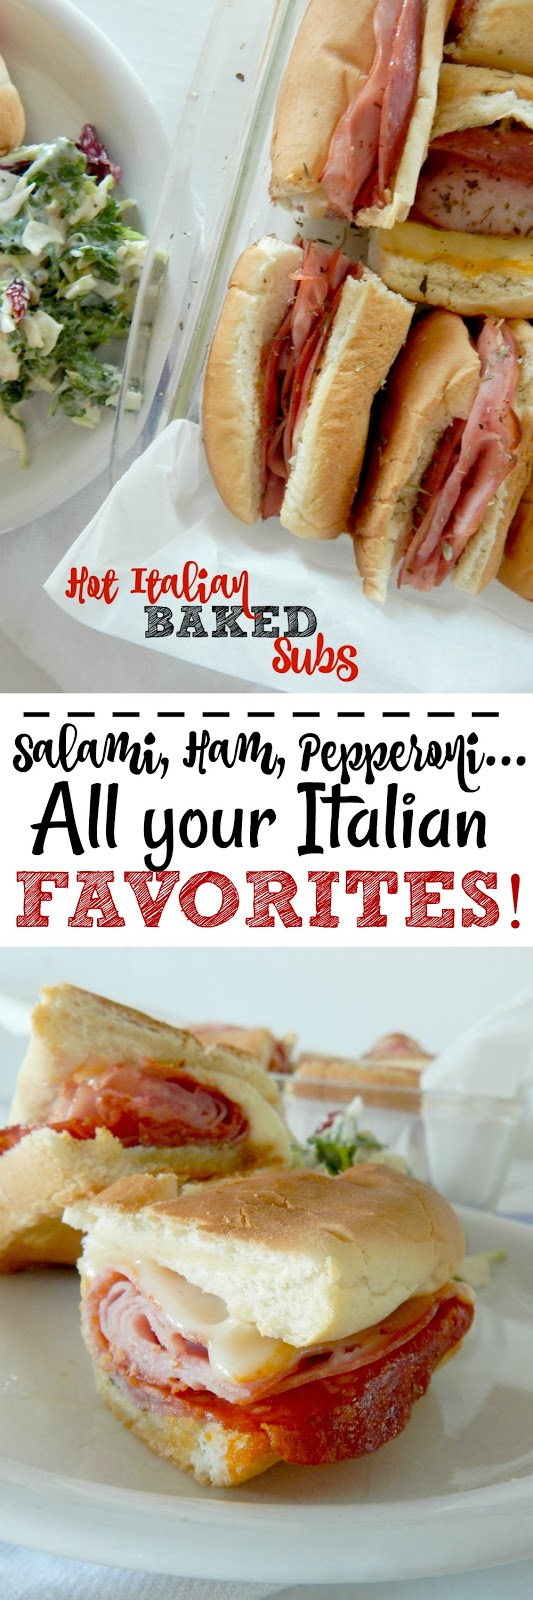 Hot Italian Baked Subs...every Mom's dream meal!  Just 10 minutes to assemble and 10 minutes to bake.  Salami, pepperoni, ham, cheese, butter and seasonings, the perfect answer for busy weeknights. (sweetandsavoryfood.com)